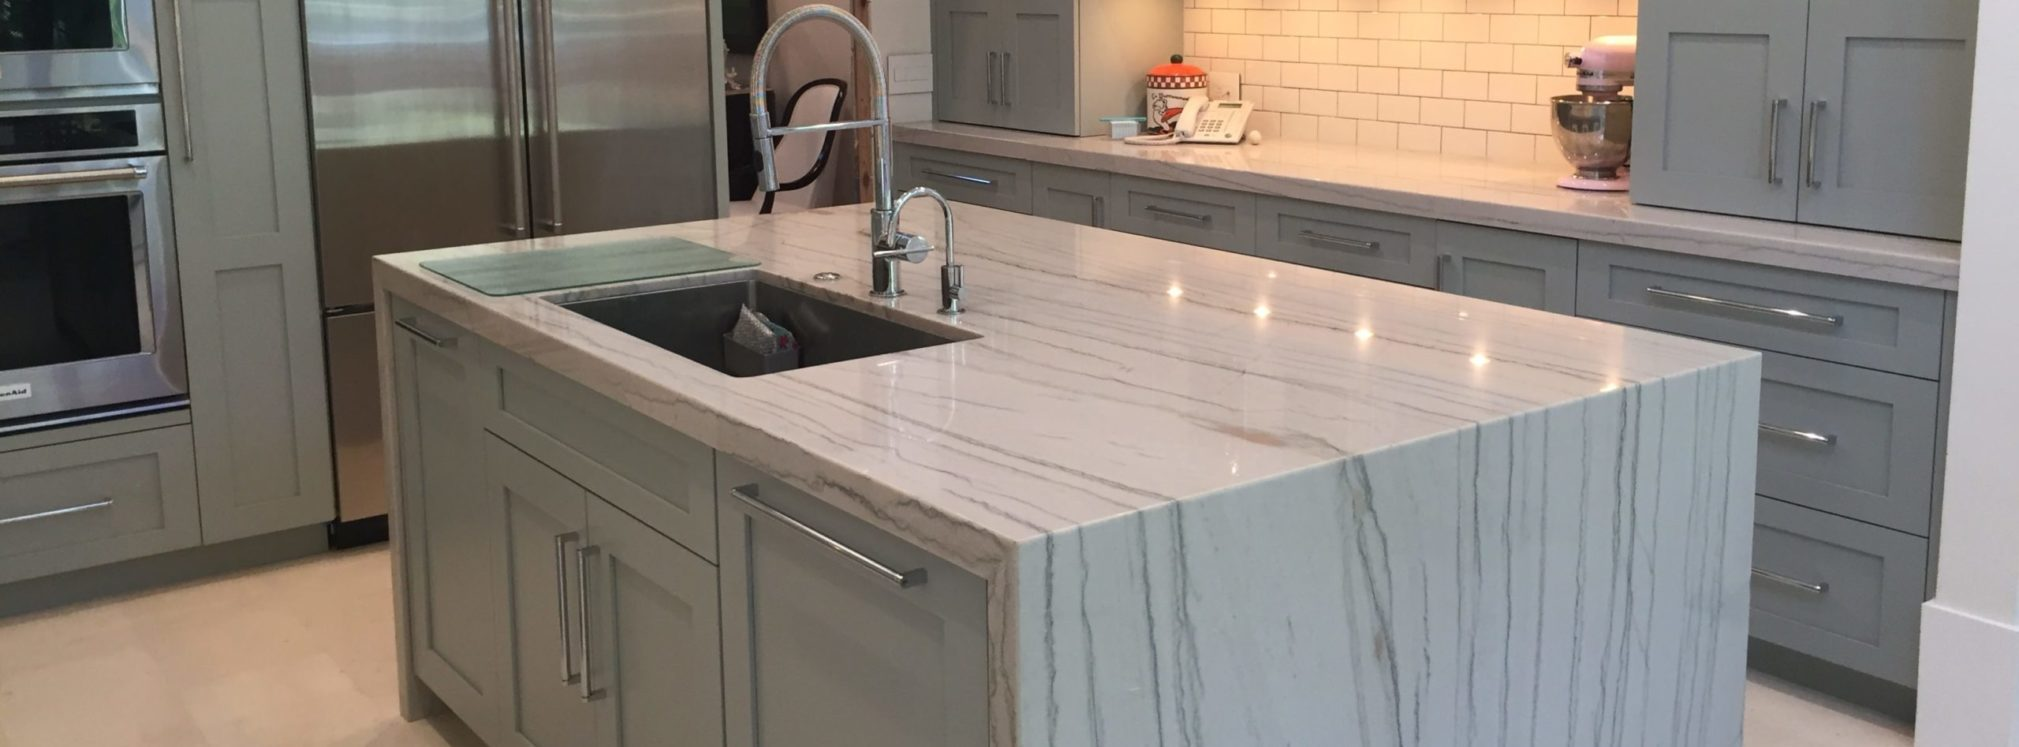 White-quartzite-for-elegant-kitchen-countertop-design-and-super-white-worldwide-stone-material-super-white-quartzite-for-kitchen-and-bathroom-countertop